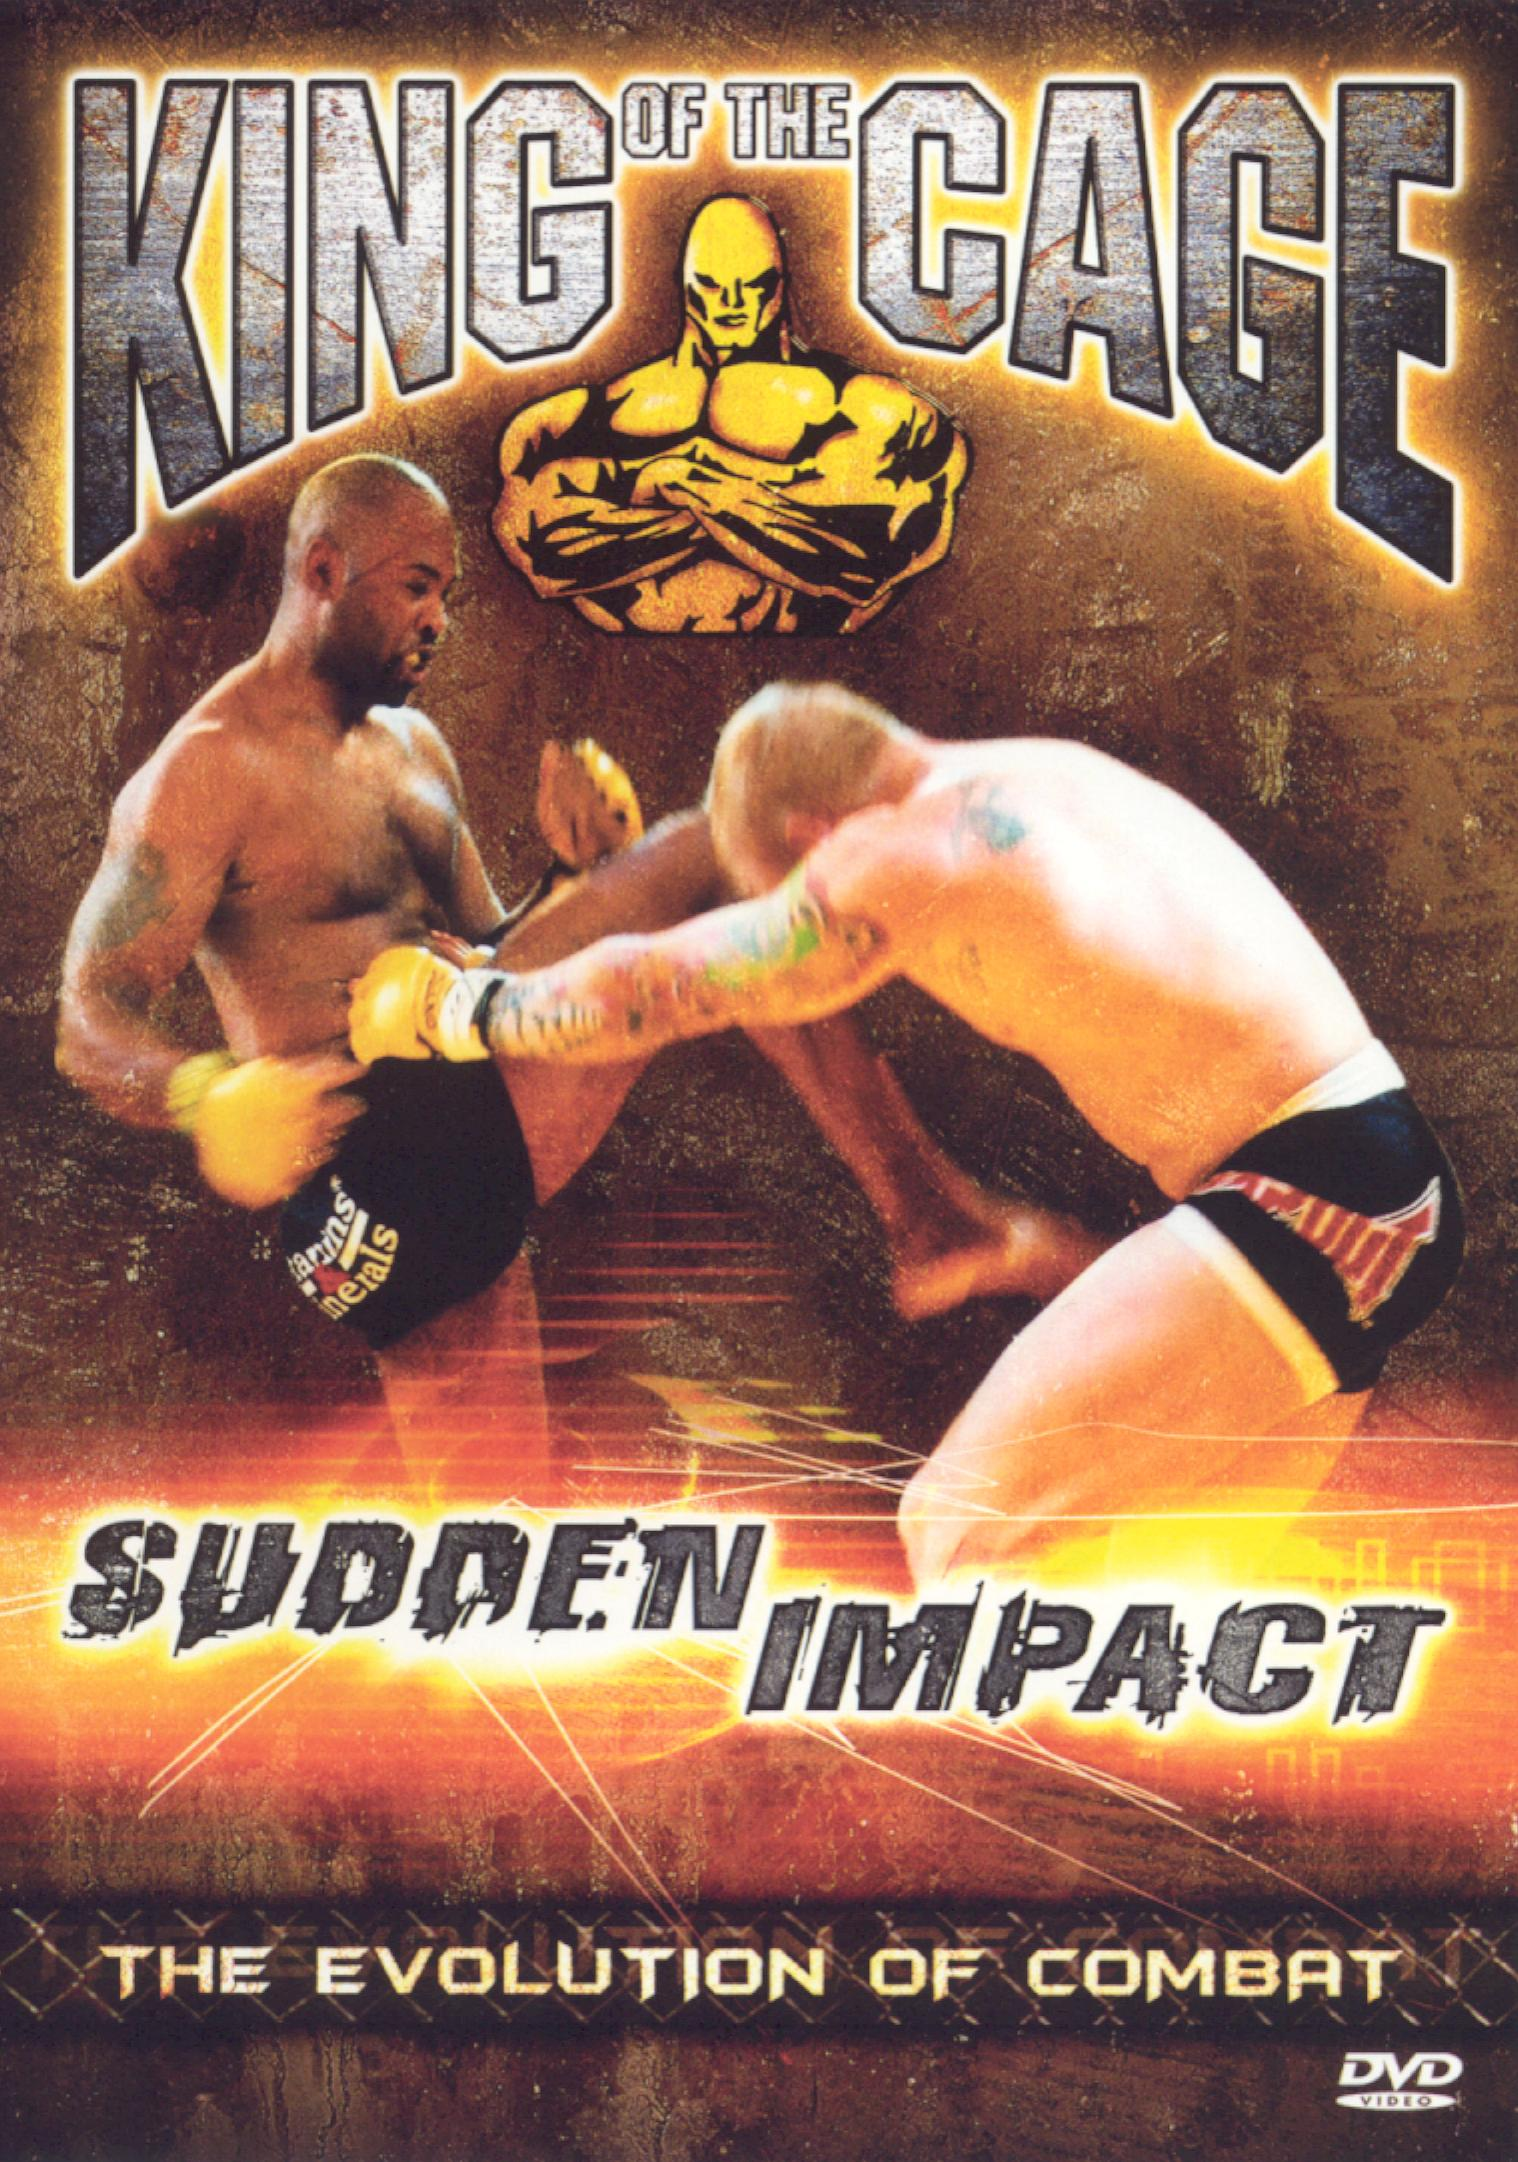 King of the Cage: Sudden Impact